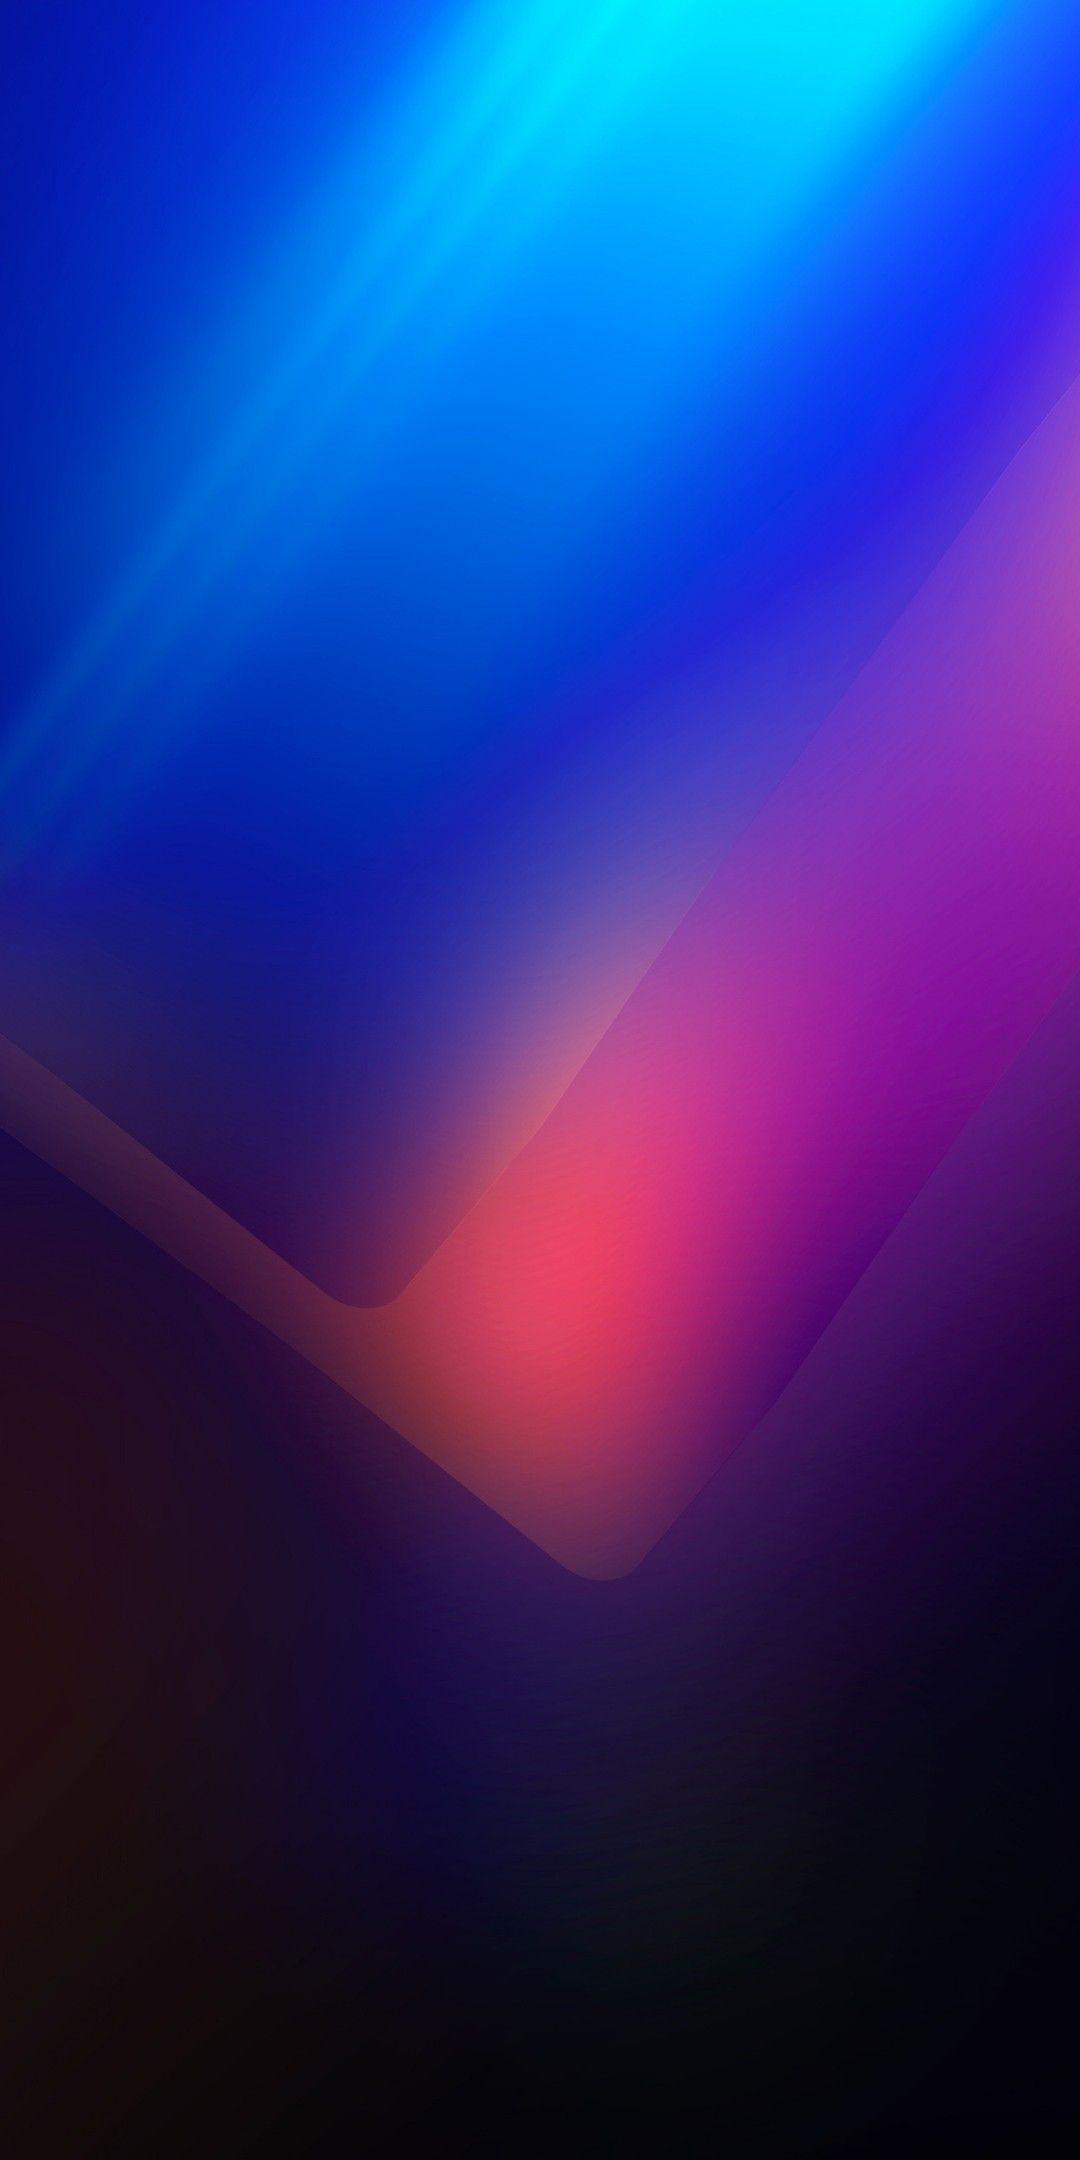 Redmi 6 Pro A Spectacular Wallpaper And Or Background For Your